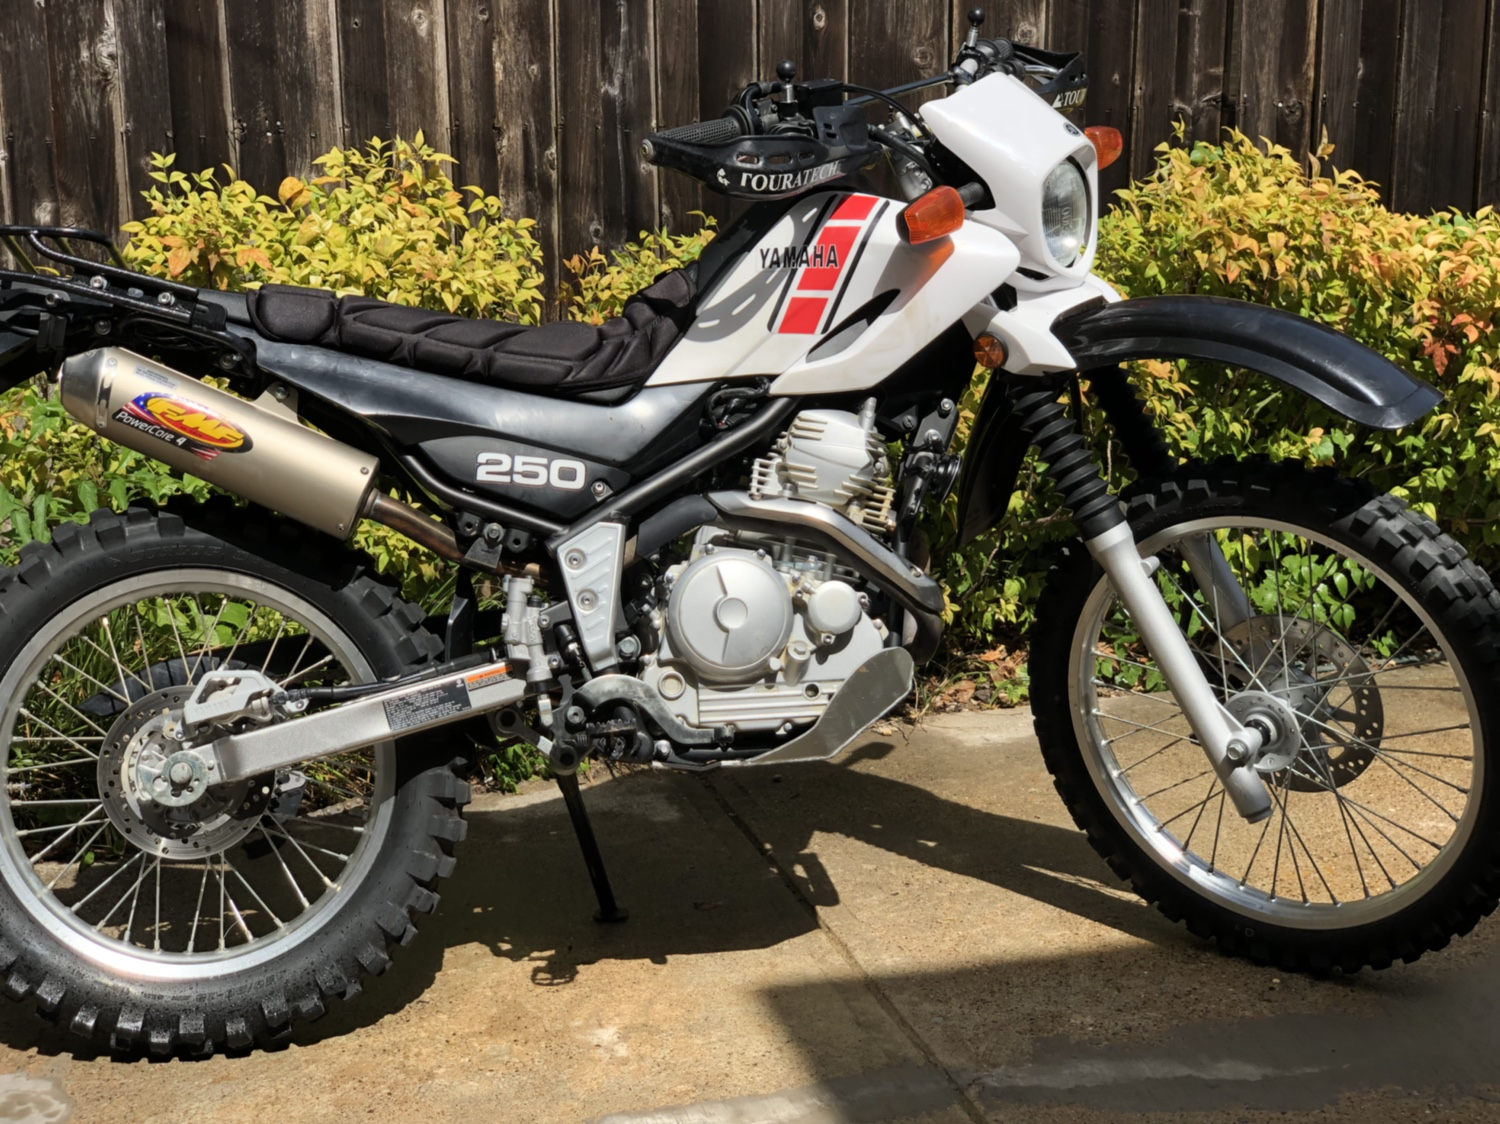 For Sale - 2013 Yamaha XT250 - $3500 OBO | Two Wheeled Texans